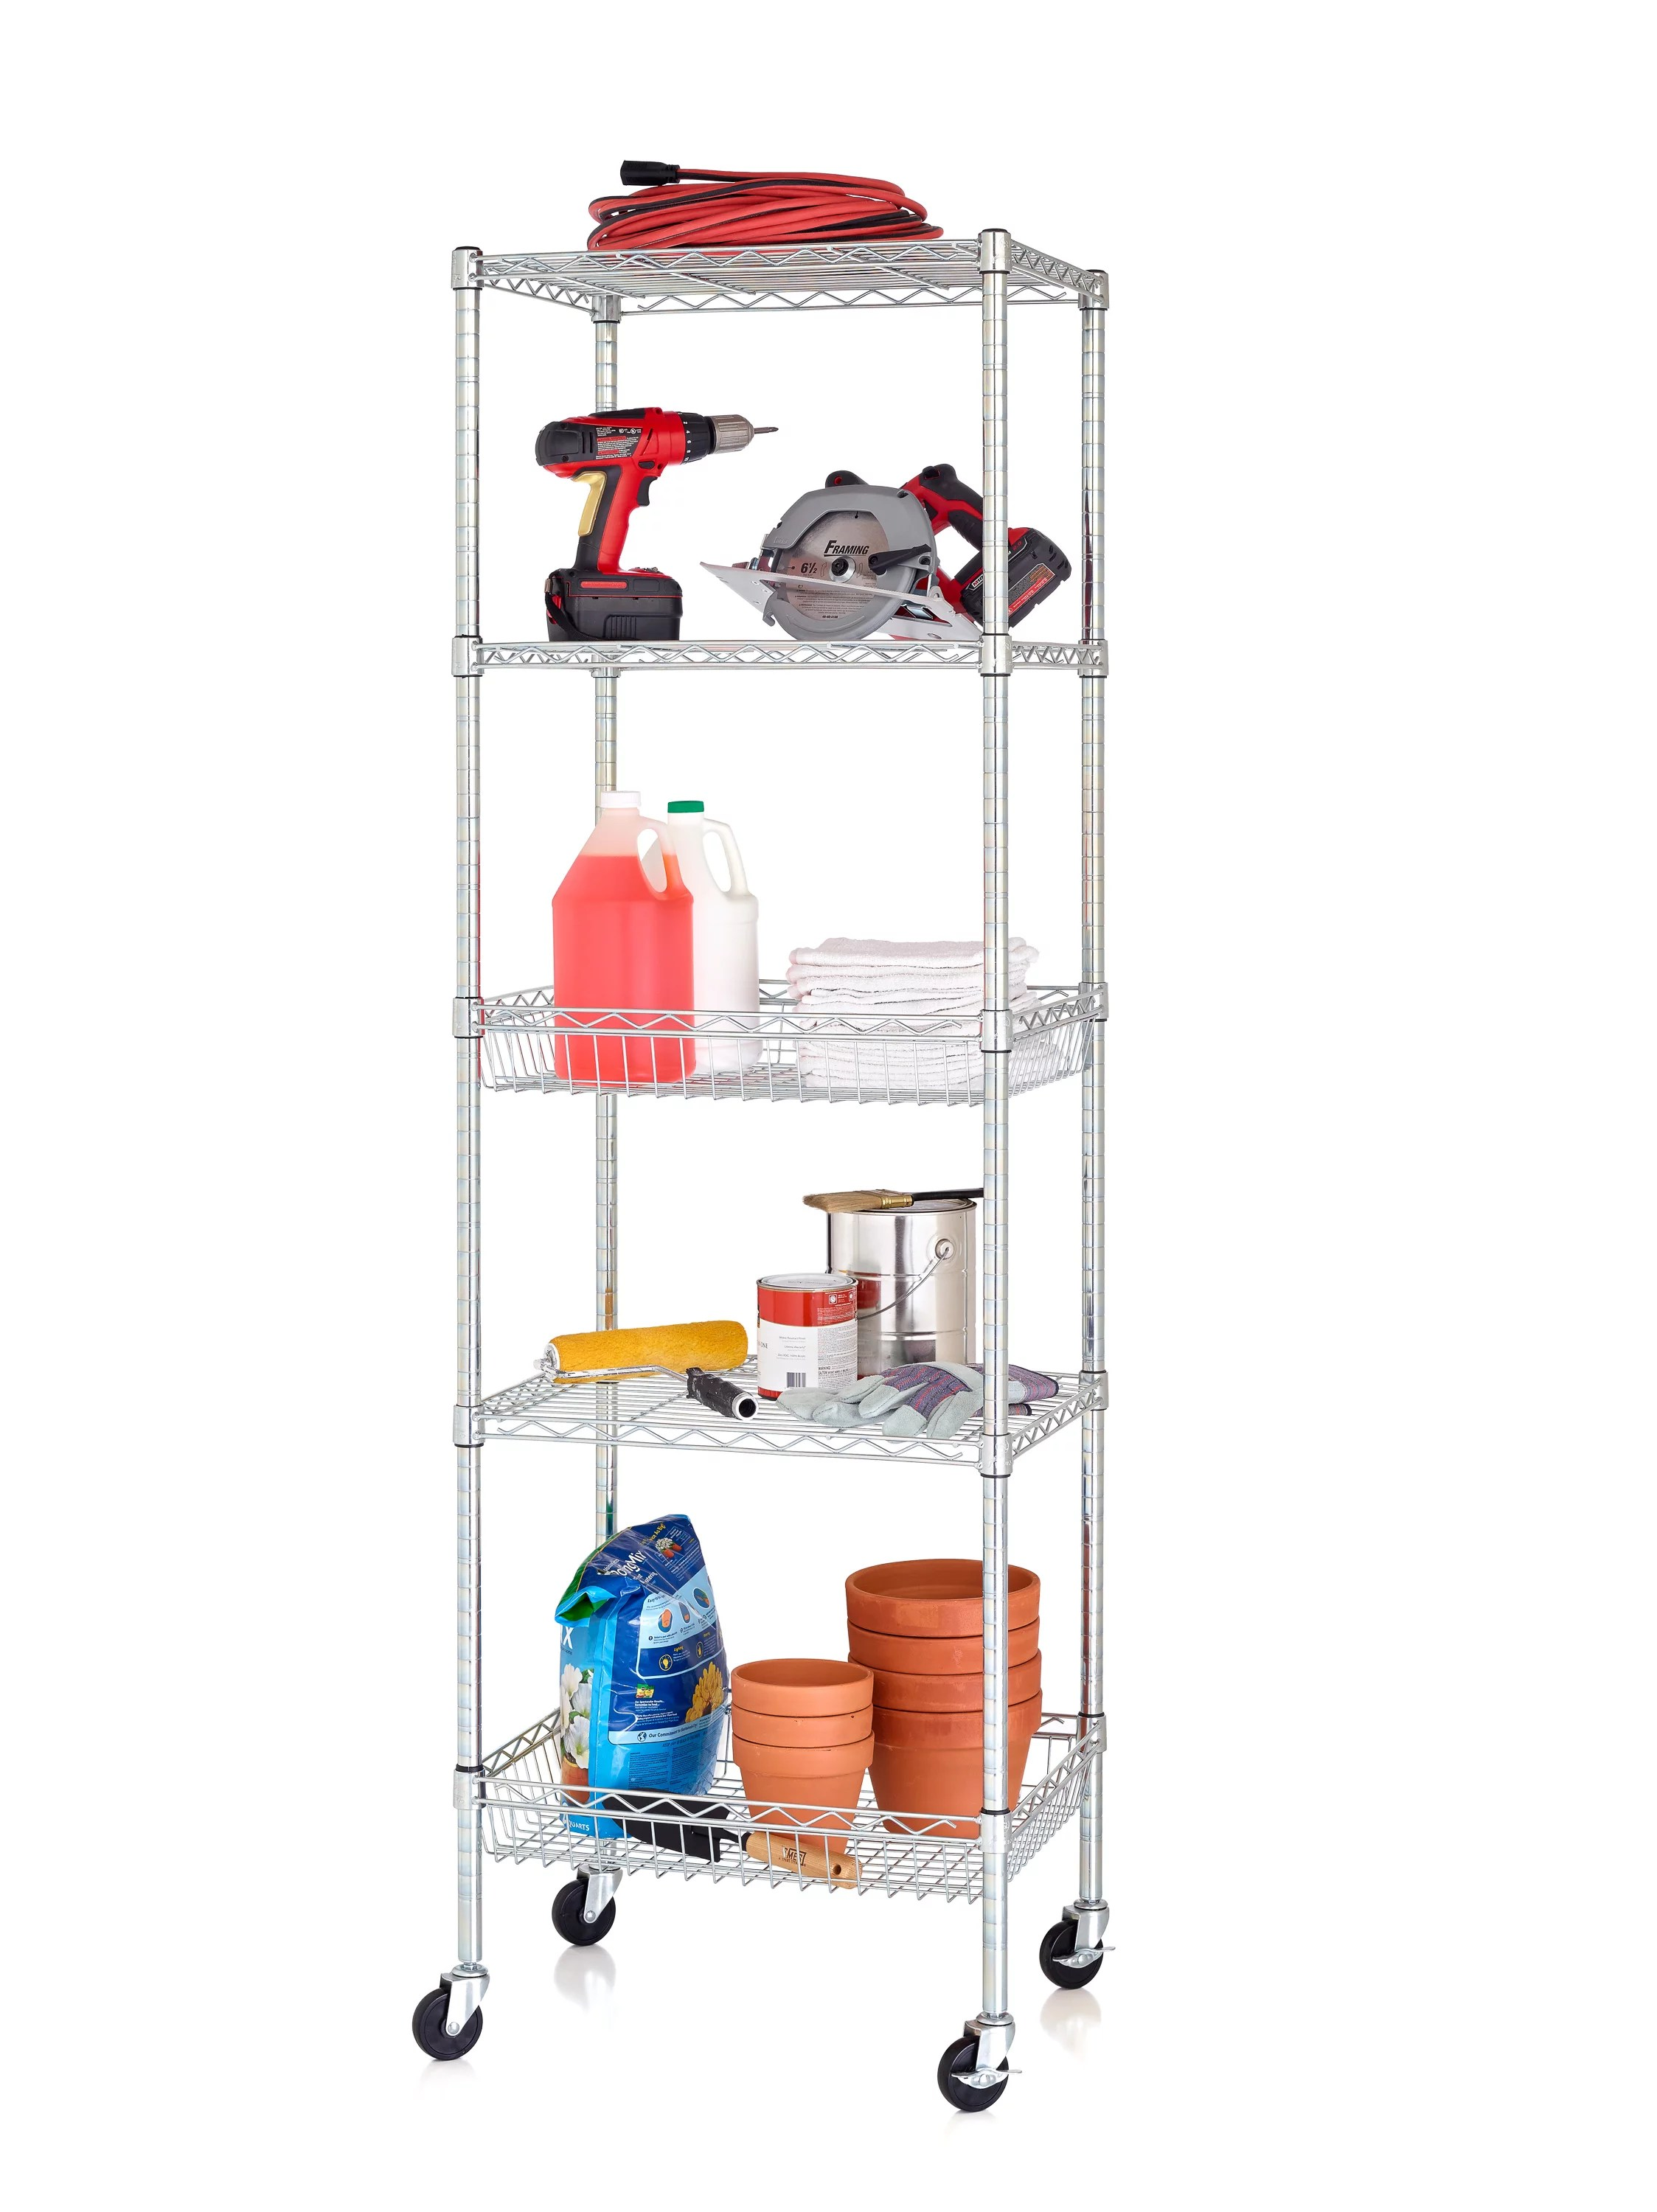 hss 18 dx24 wx75 h 5 tier wire shelving tower rack with 3 casters chrome